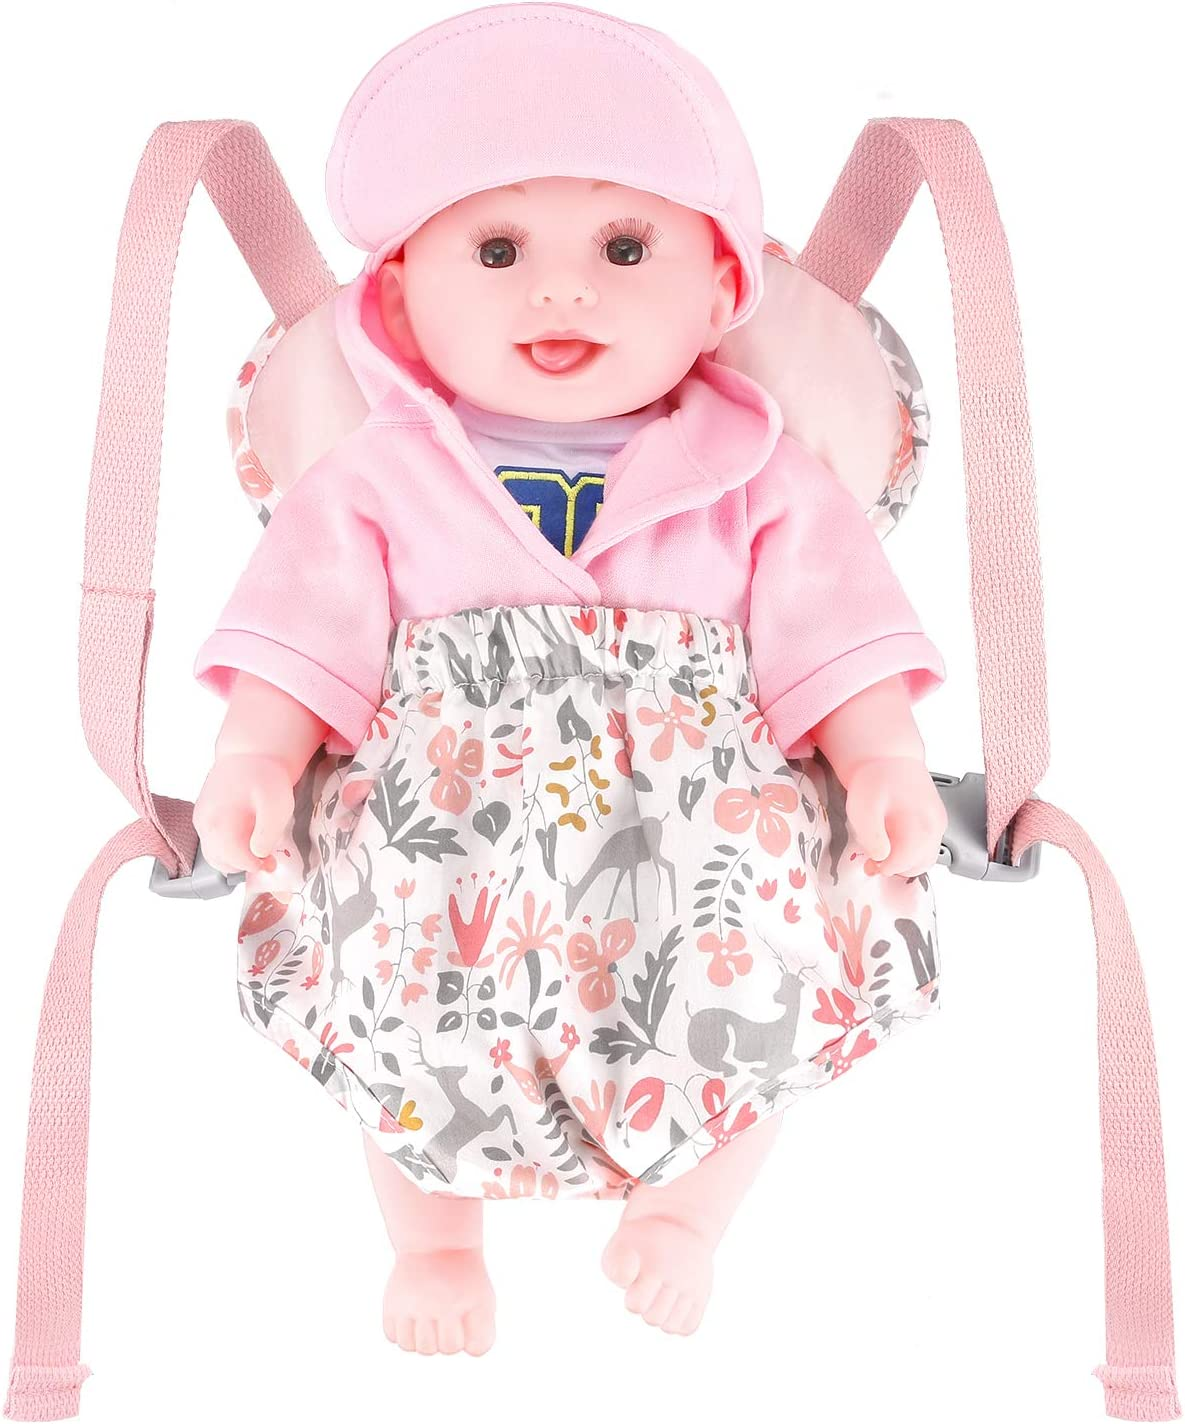 Pink GAGAKU Baby Doll Carrier Stuffed Toy Carrier Doll Accessories for Kids Reindeer